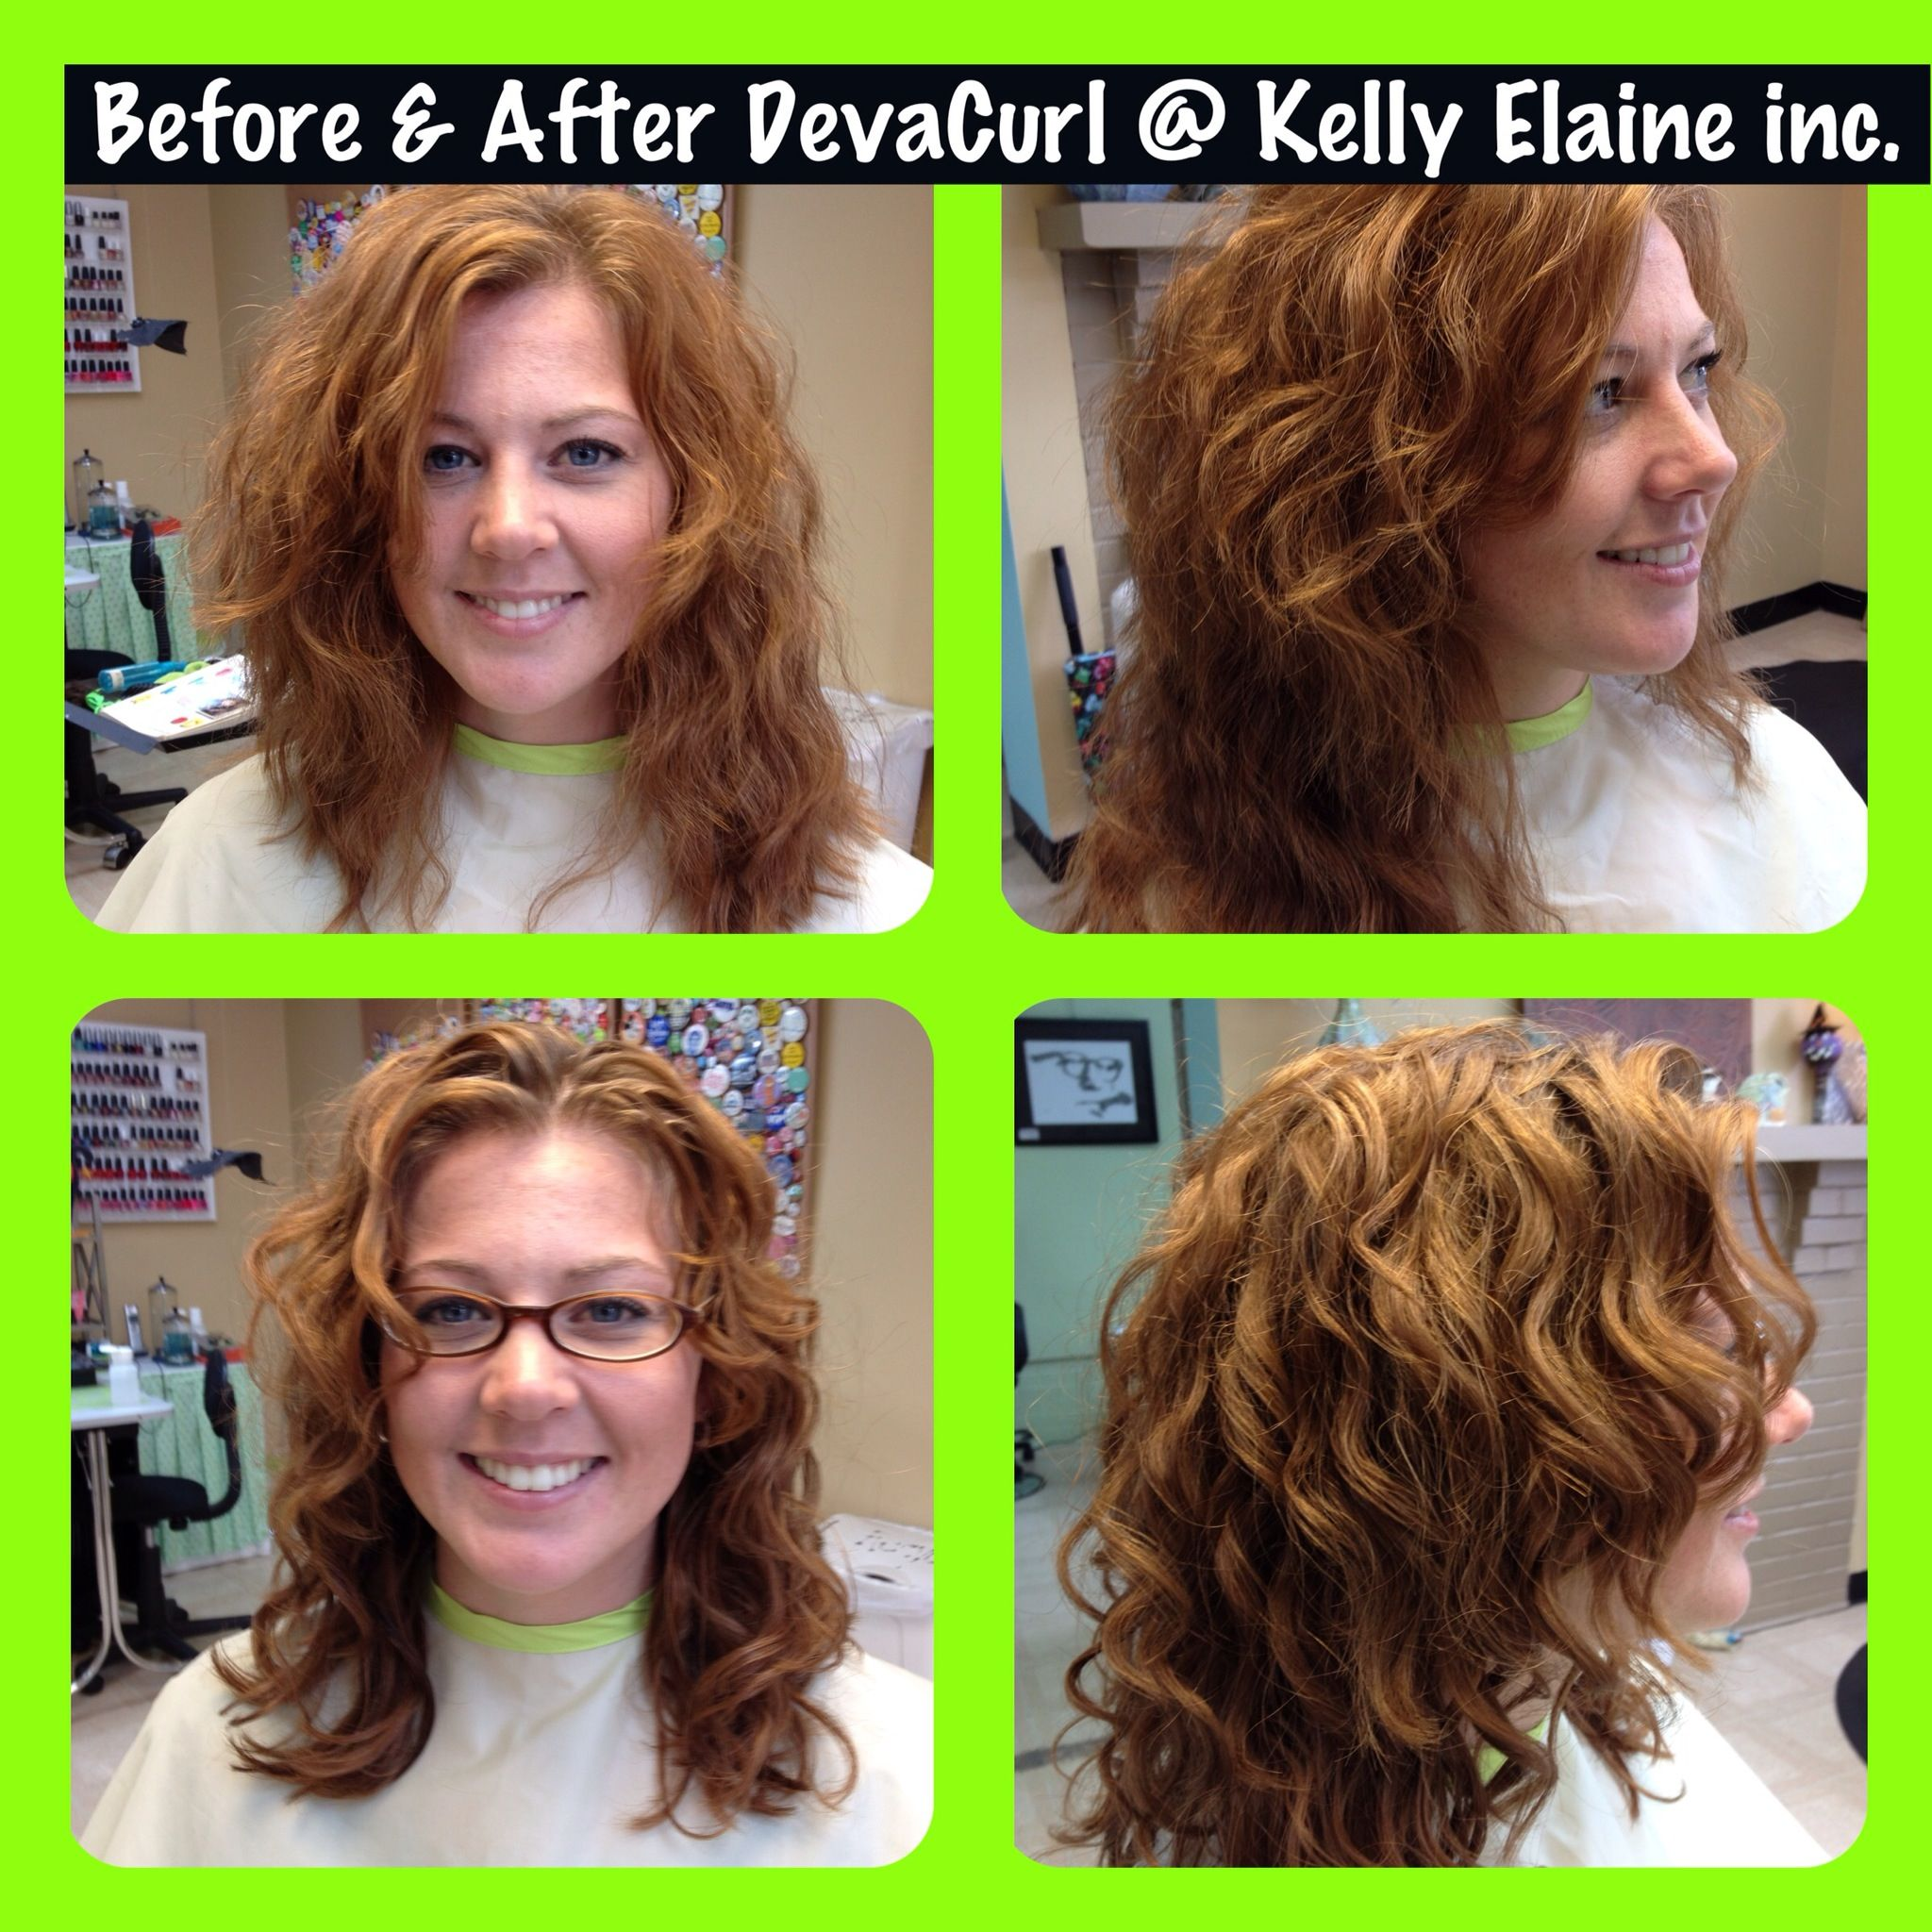 Devacurl before and after kelly elaine inc a curly hair salon and devacurl hair cuts and the full line of devacurl products at kelly elaine inc a curly hair salon and such pittsburgh pa 15235 amazing before and after winobraniefo Gallery